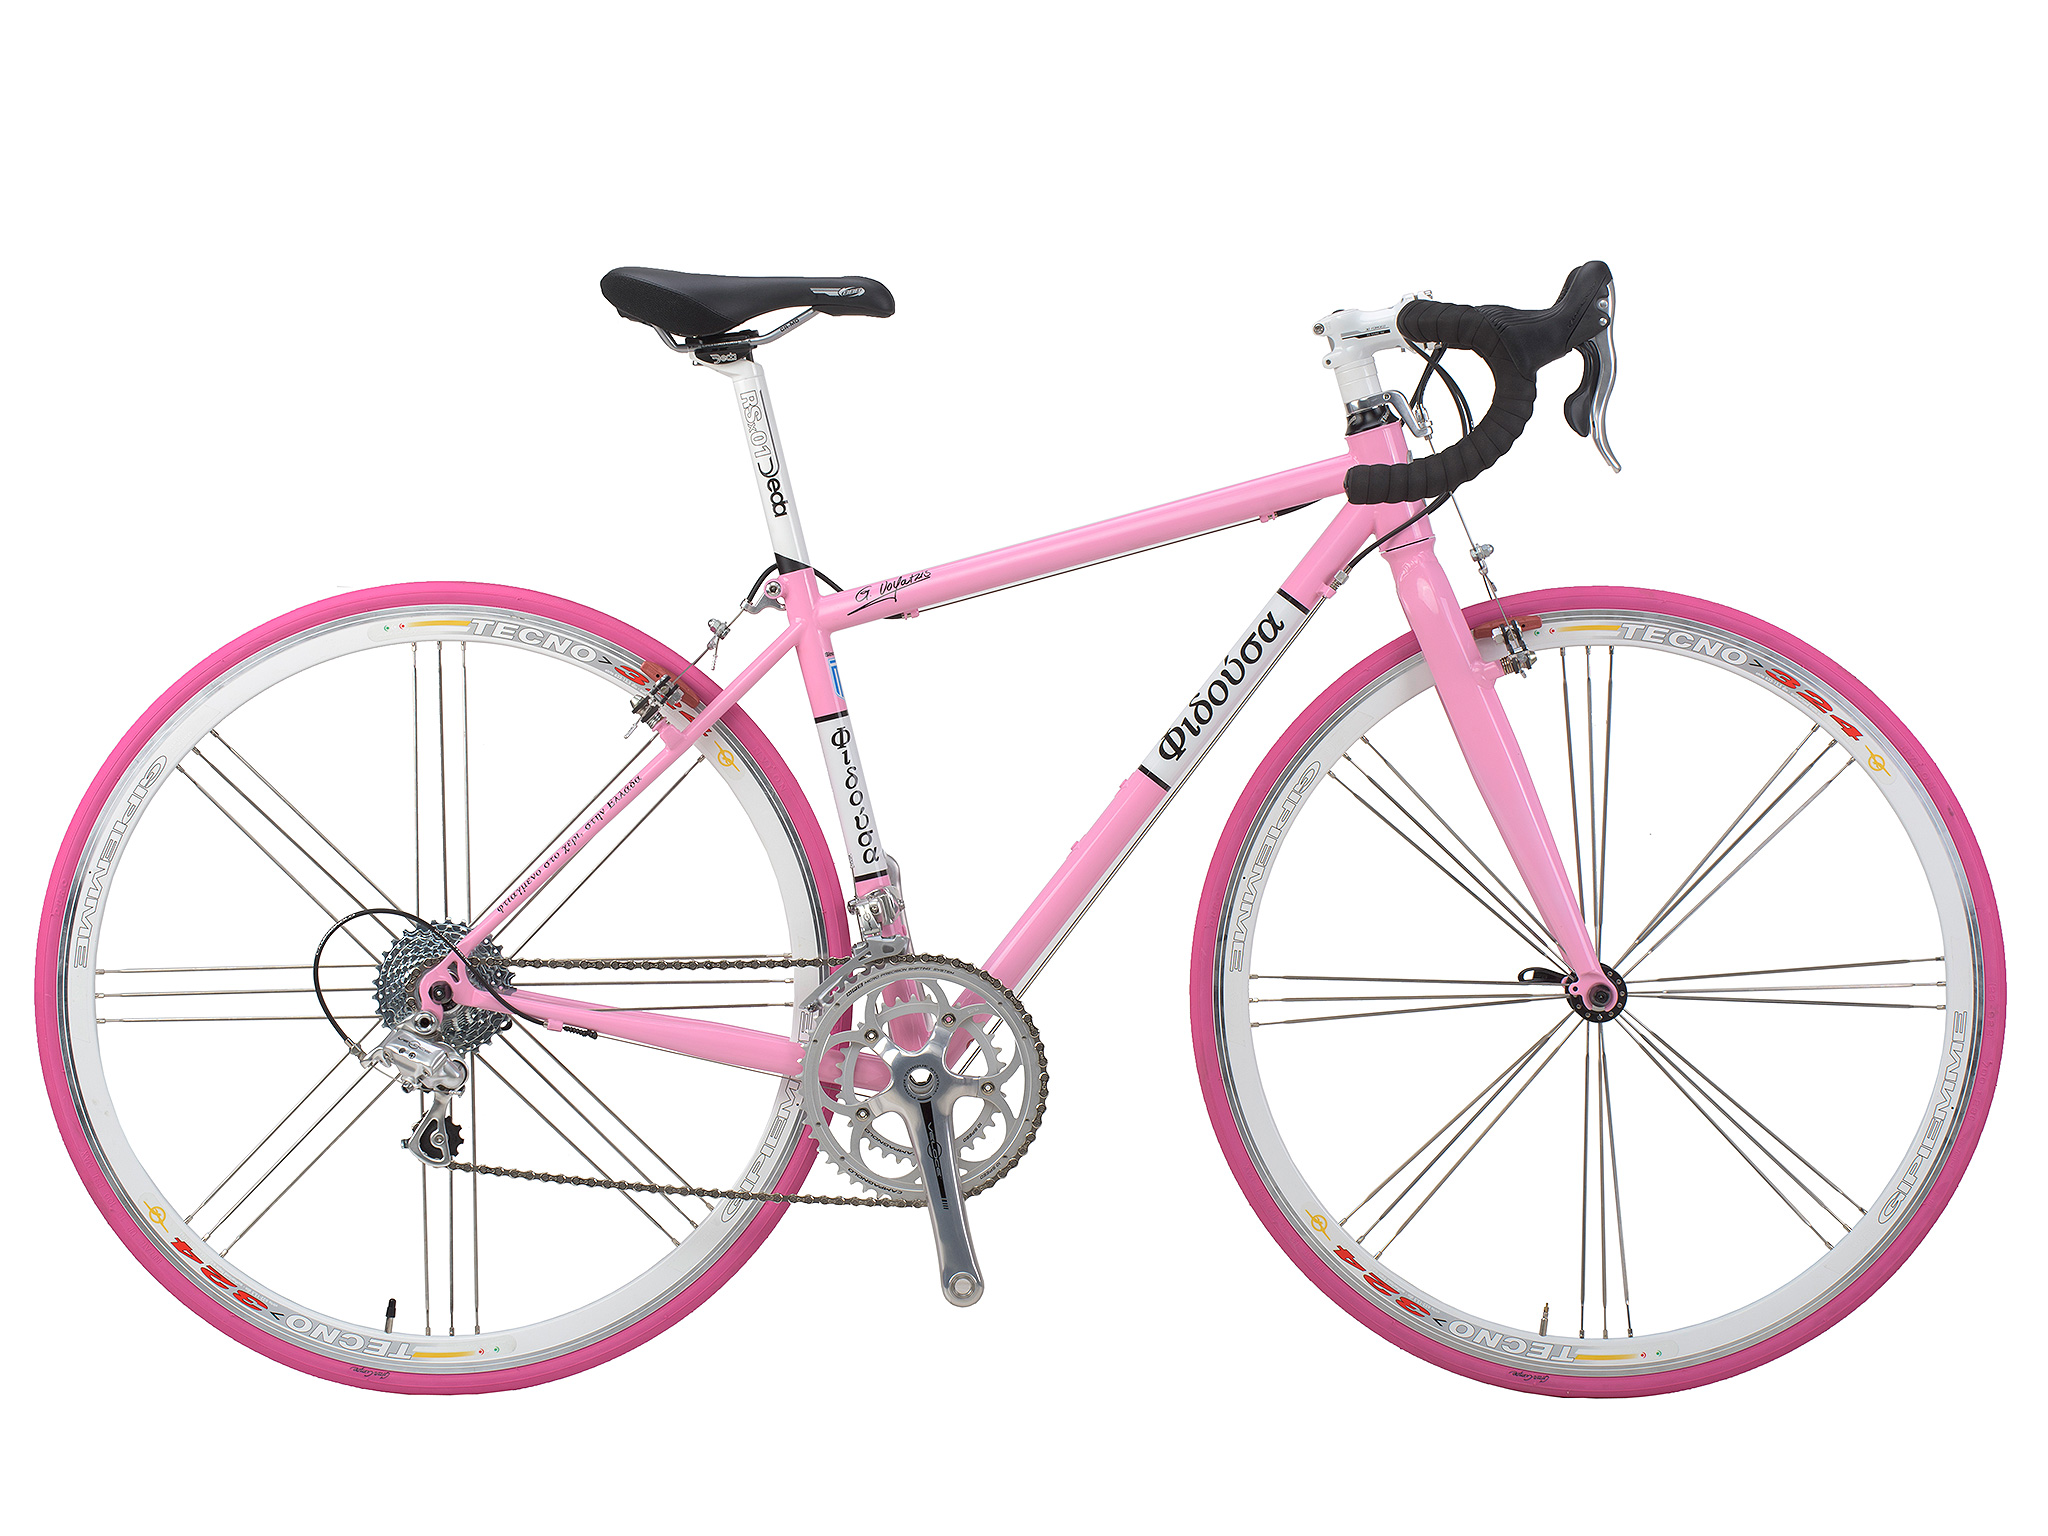 CR-MO-PINK-BIKE-LAND-clear Anna Maria's Road Bike